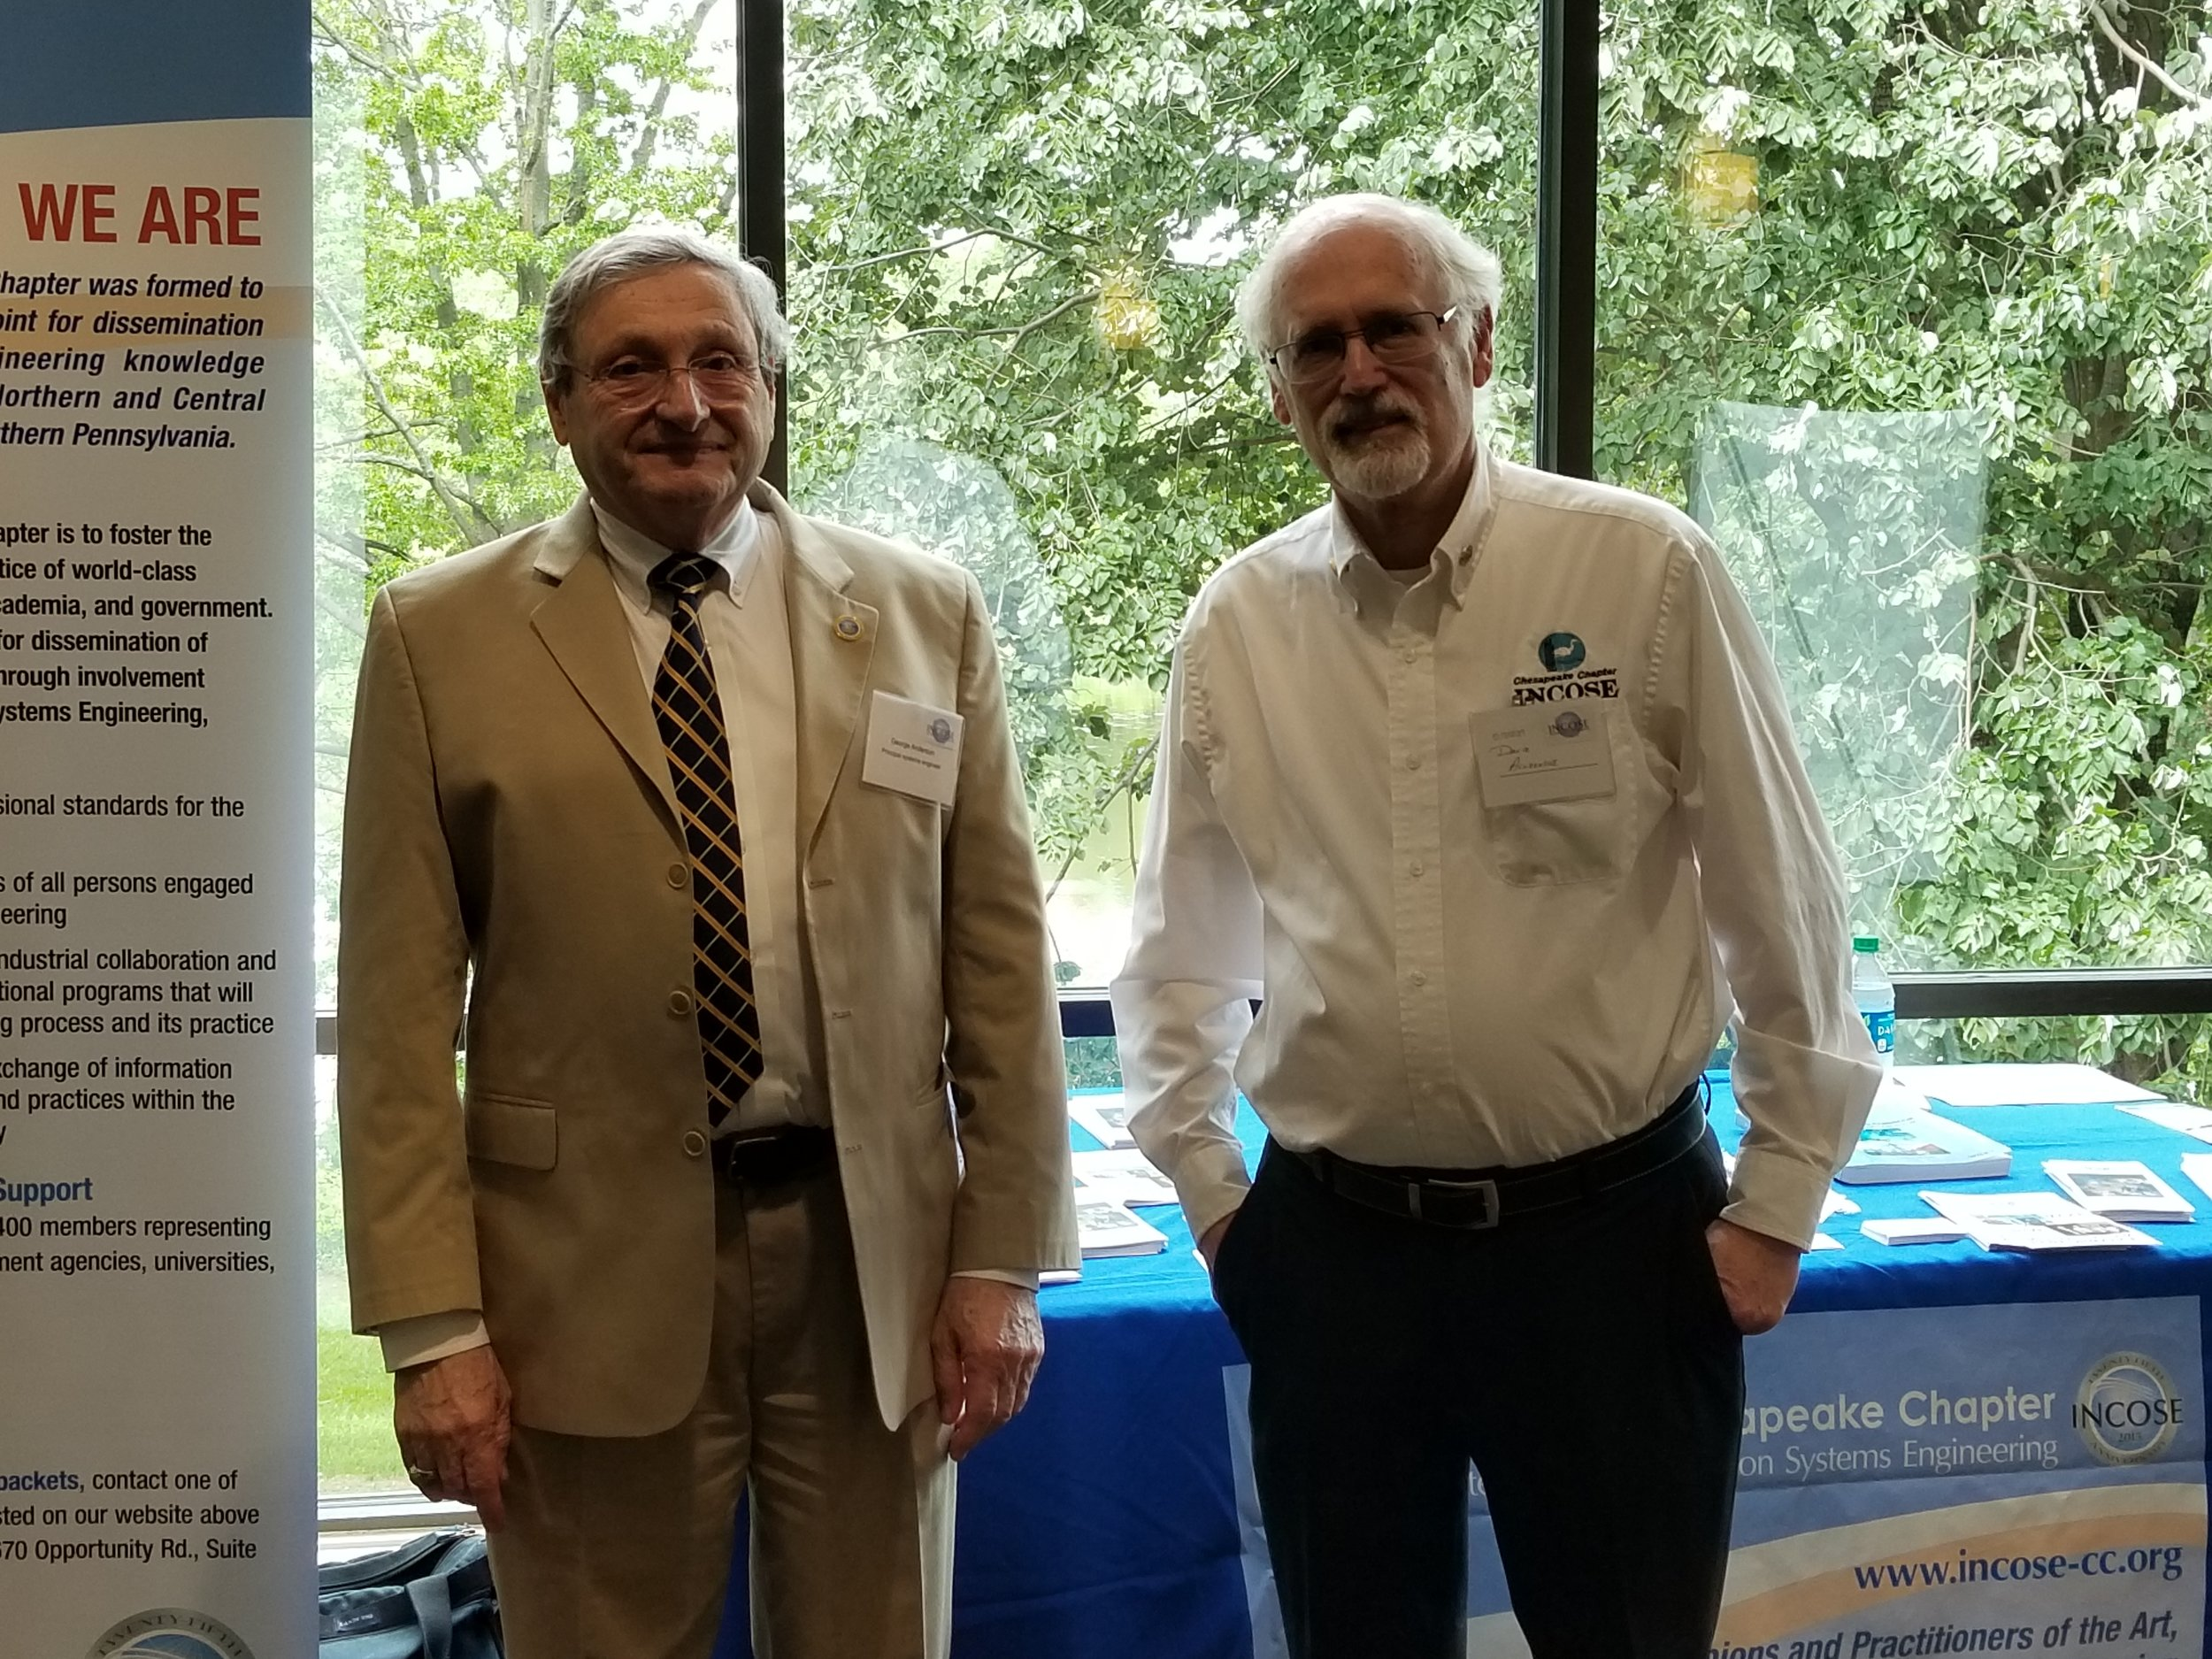 George Anderson and Dave Alldredge at the May 23, 2018 reStart job fair